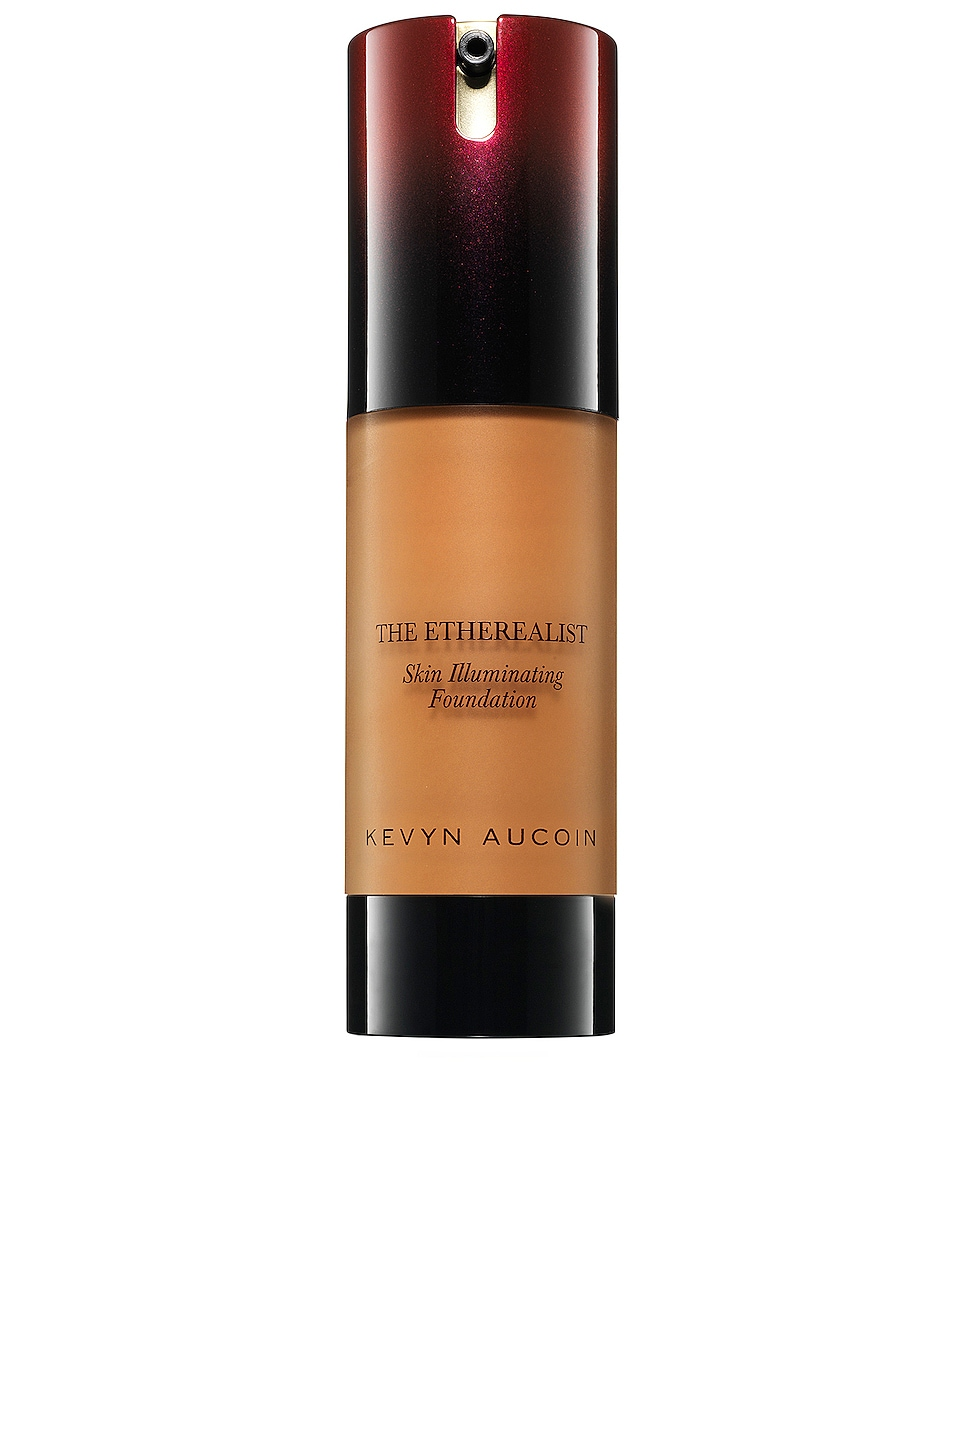 Kevyn Aucoin The Etherealist Skin Illuminating Foundation in Deep 15